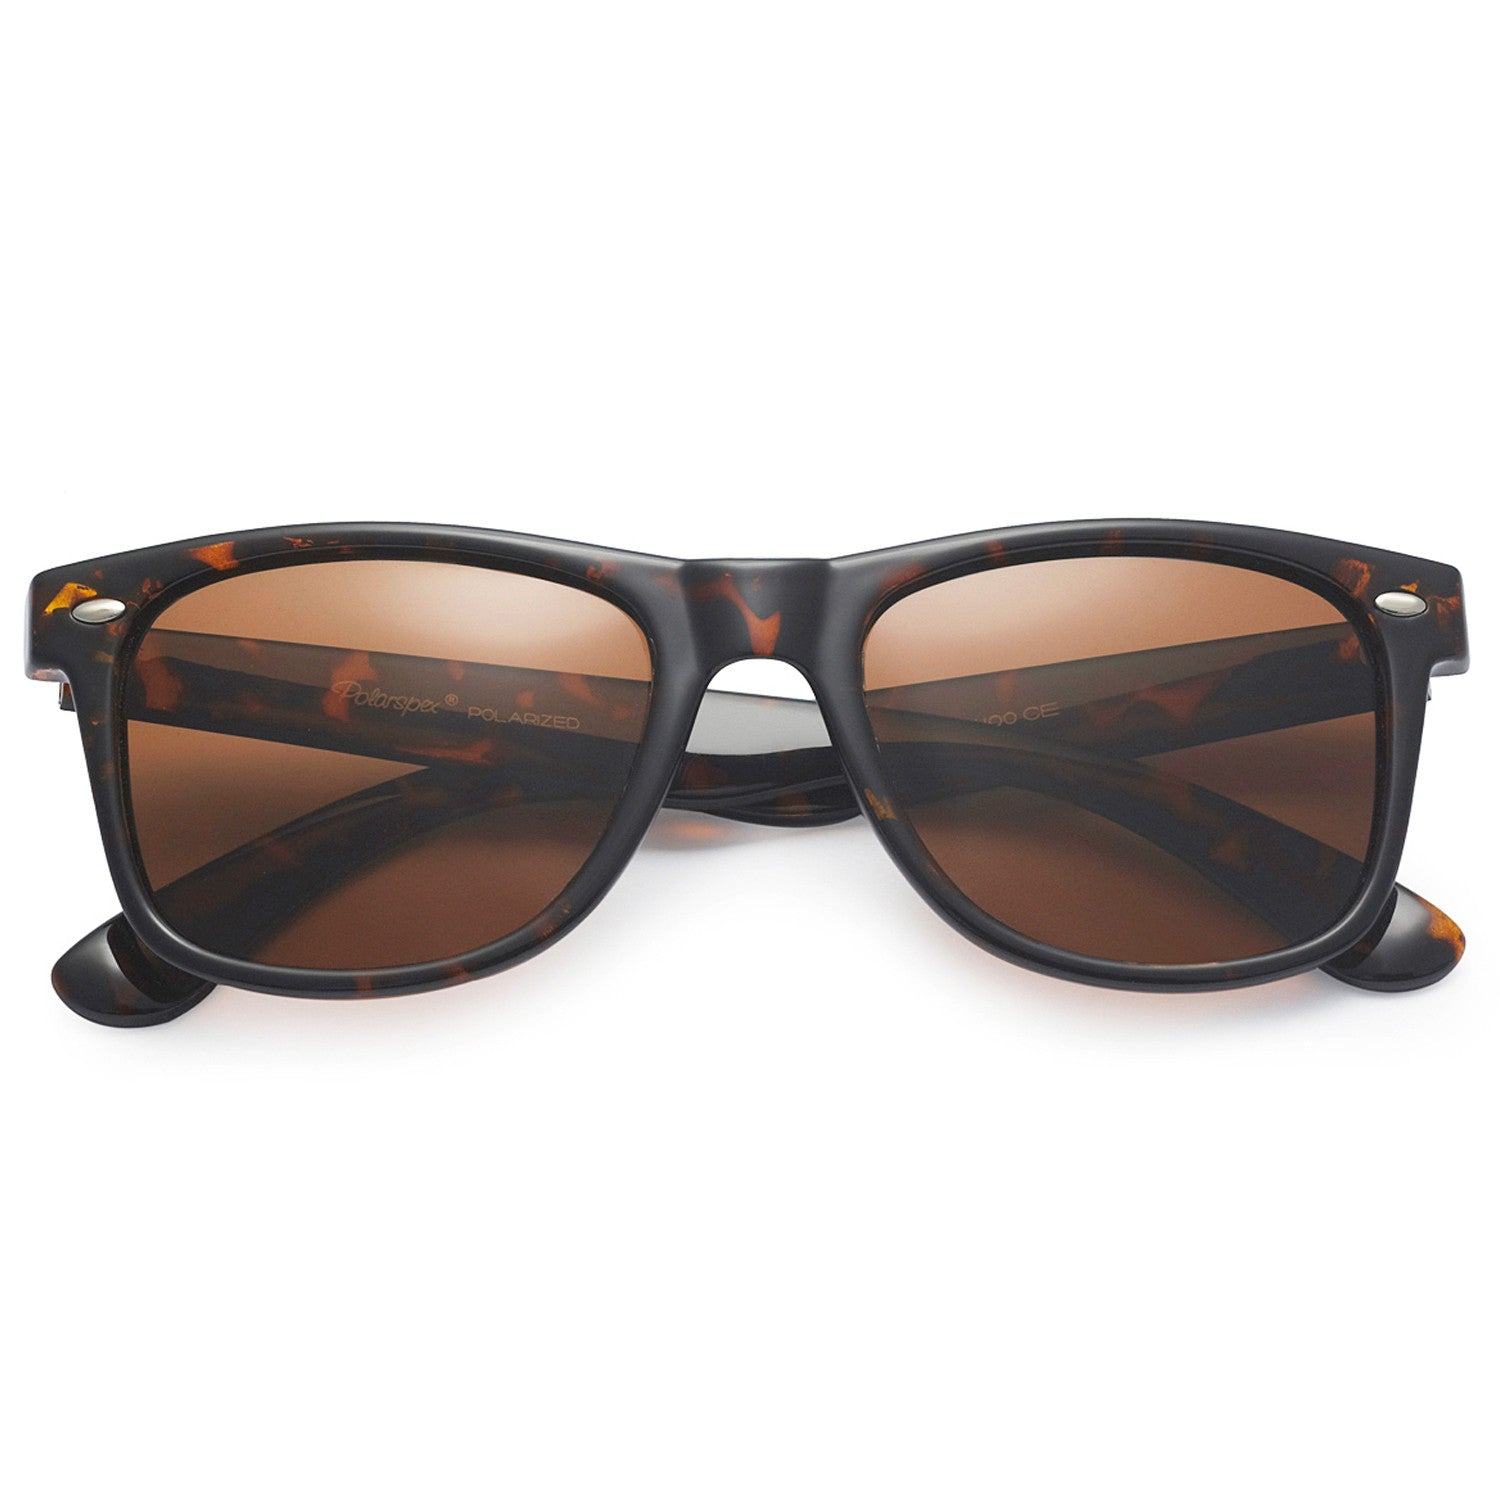 Polarspex Polarized 80's Retro Style Unisex Sunglasses with Tortoise Frames and Brown Lenses